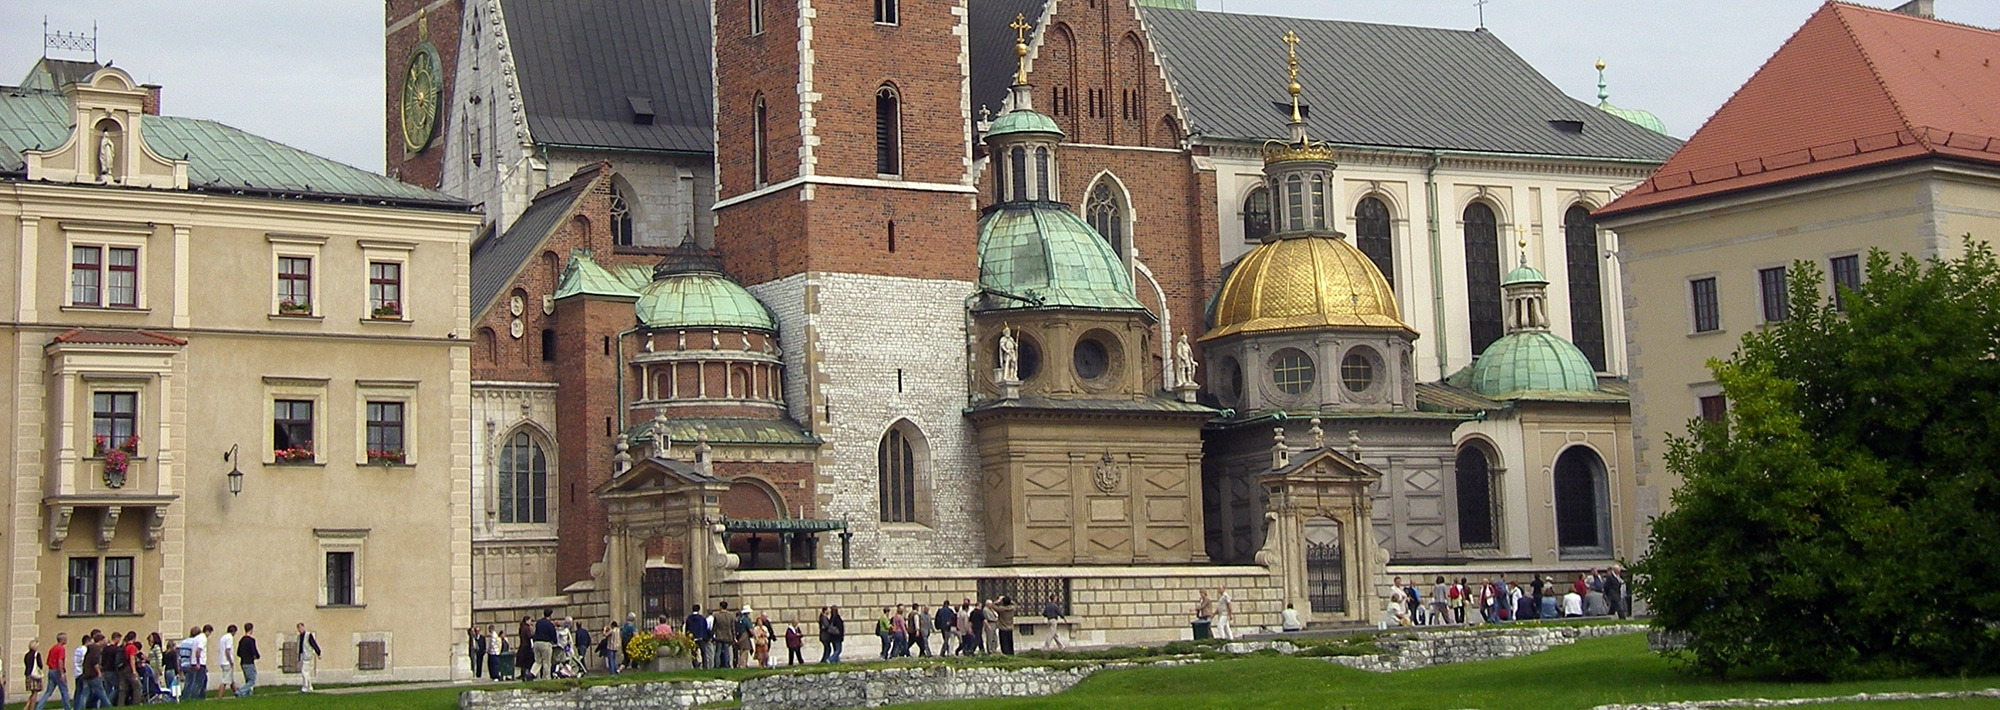 Jewish Heritage Travel to Poland | jhtravel.org